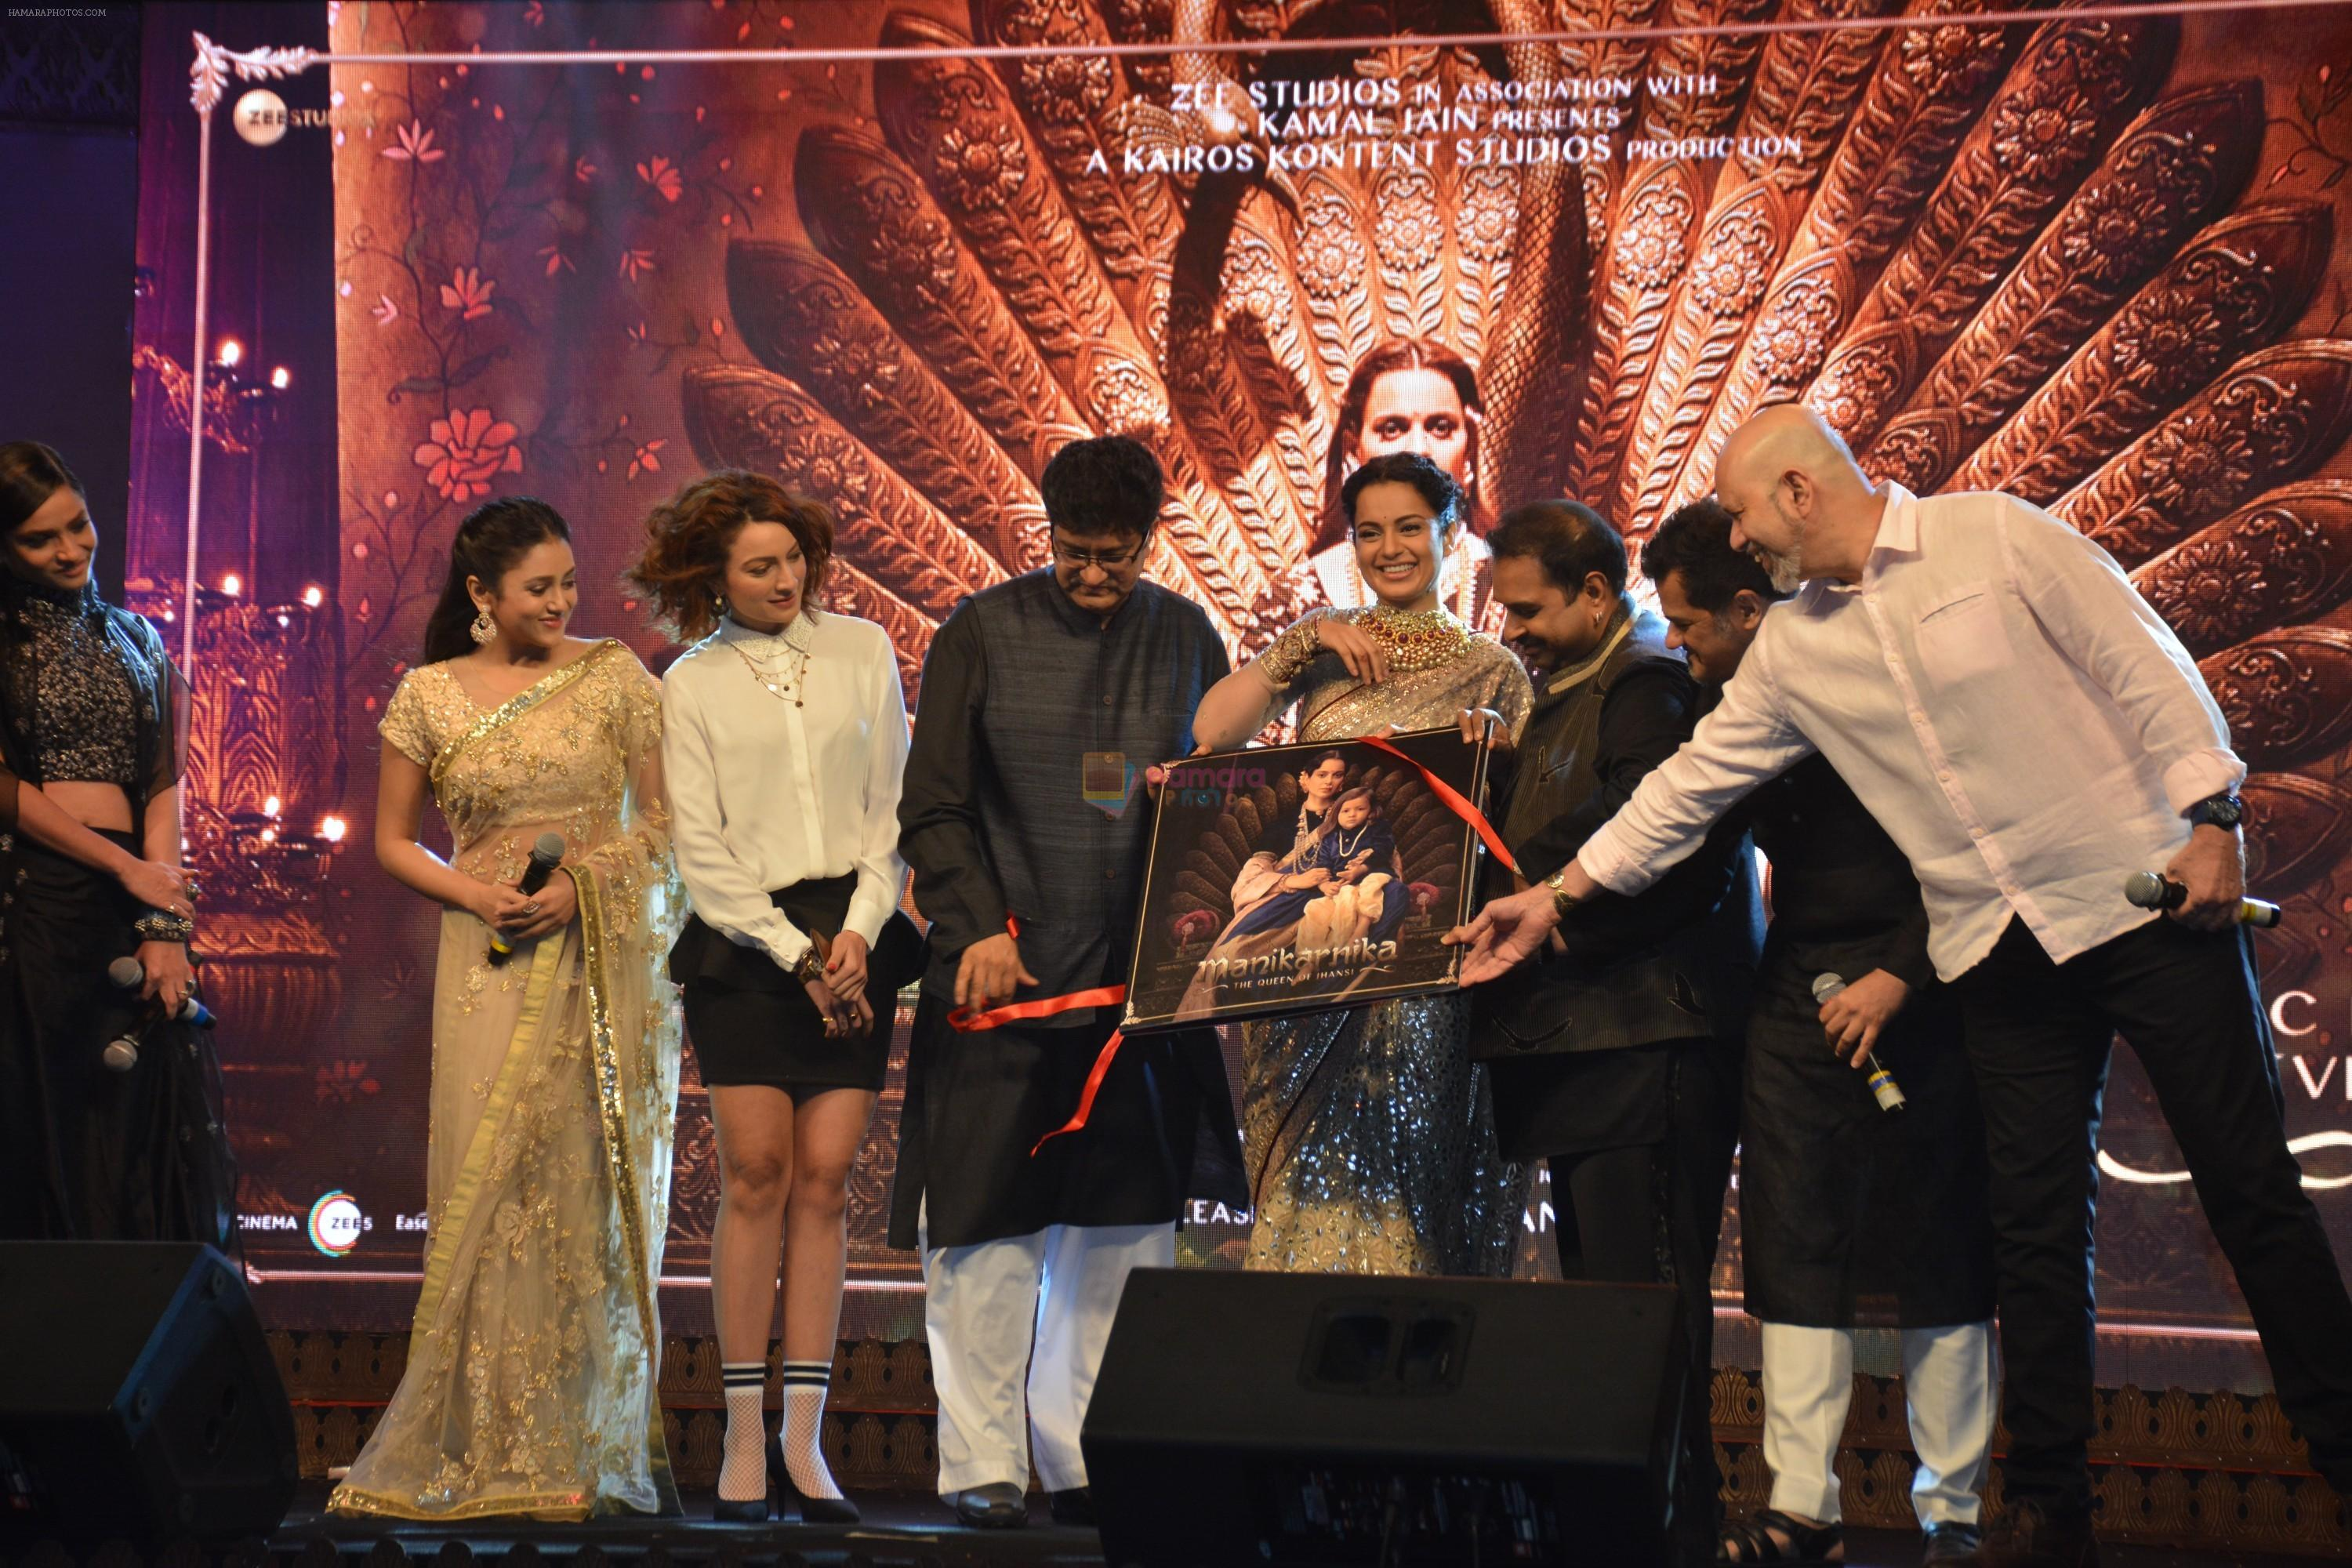 Ankita Lokhande, Kangana Ranaut, Mishti. Shankar Mahadevan, Ehsaan Noorani, Loy Mendonsa, Taher Shabbir, Parsoon Joshi at the Manikarnika music launch in Taj Lands End bandra on 9th Jan 2019